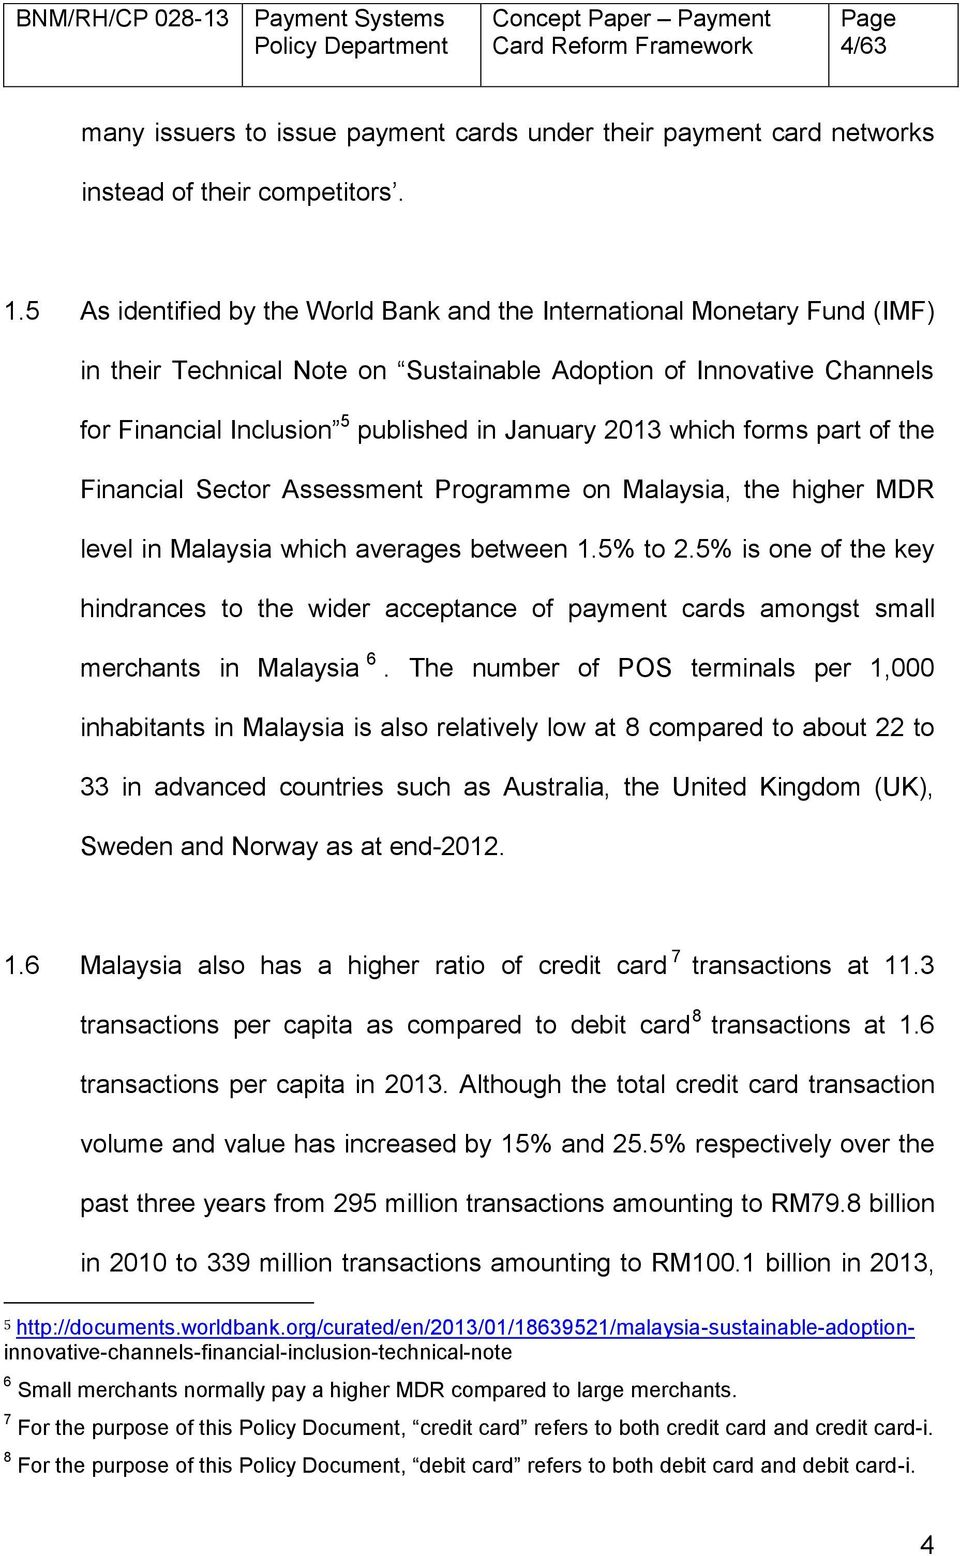 which forms part of the Financial Sector Assessment Programme on Malaysia, the higher MDR level in Malaysia which averages between 1.5% to 2.